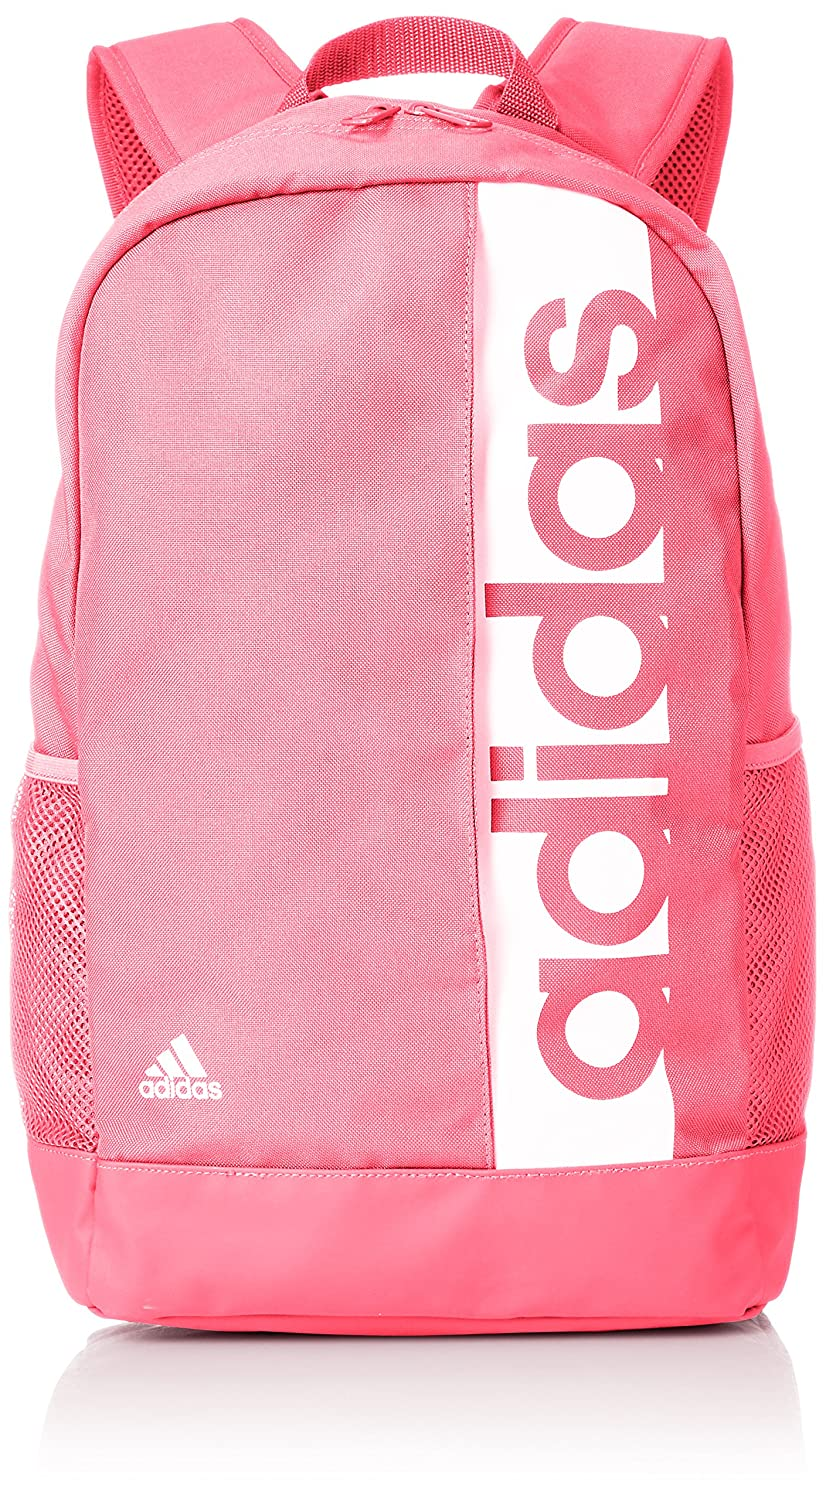 a87d2acf adidas Performance Rucksack Backpack: Amazon.co.uk: Sports & Outdoors